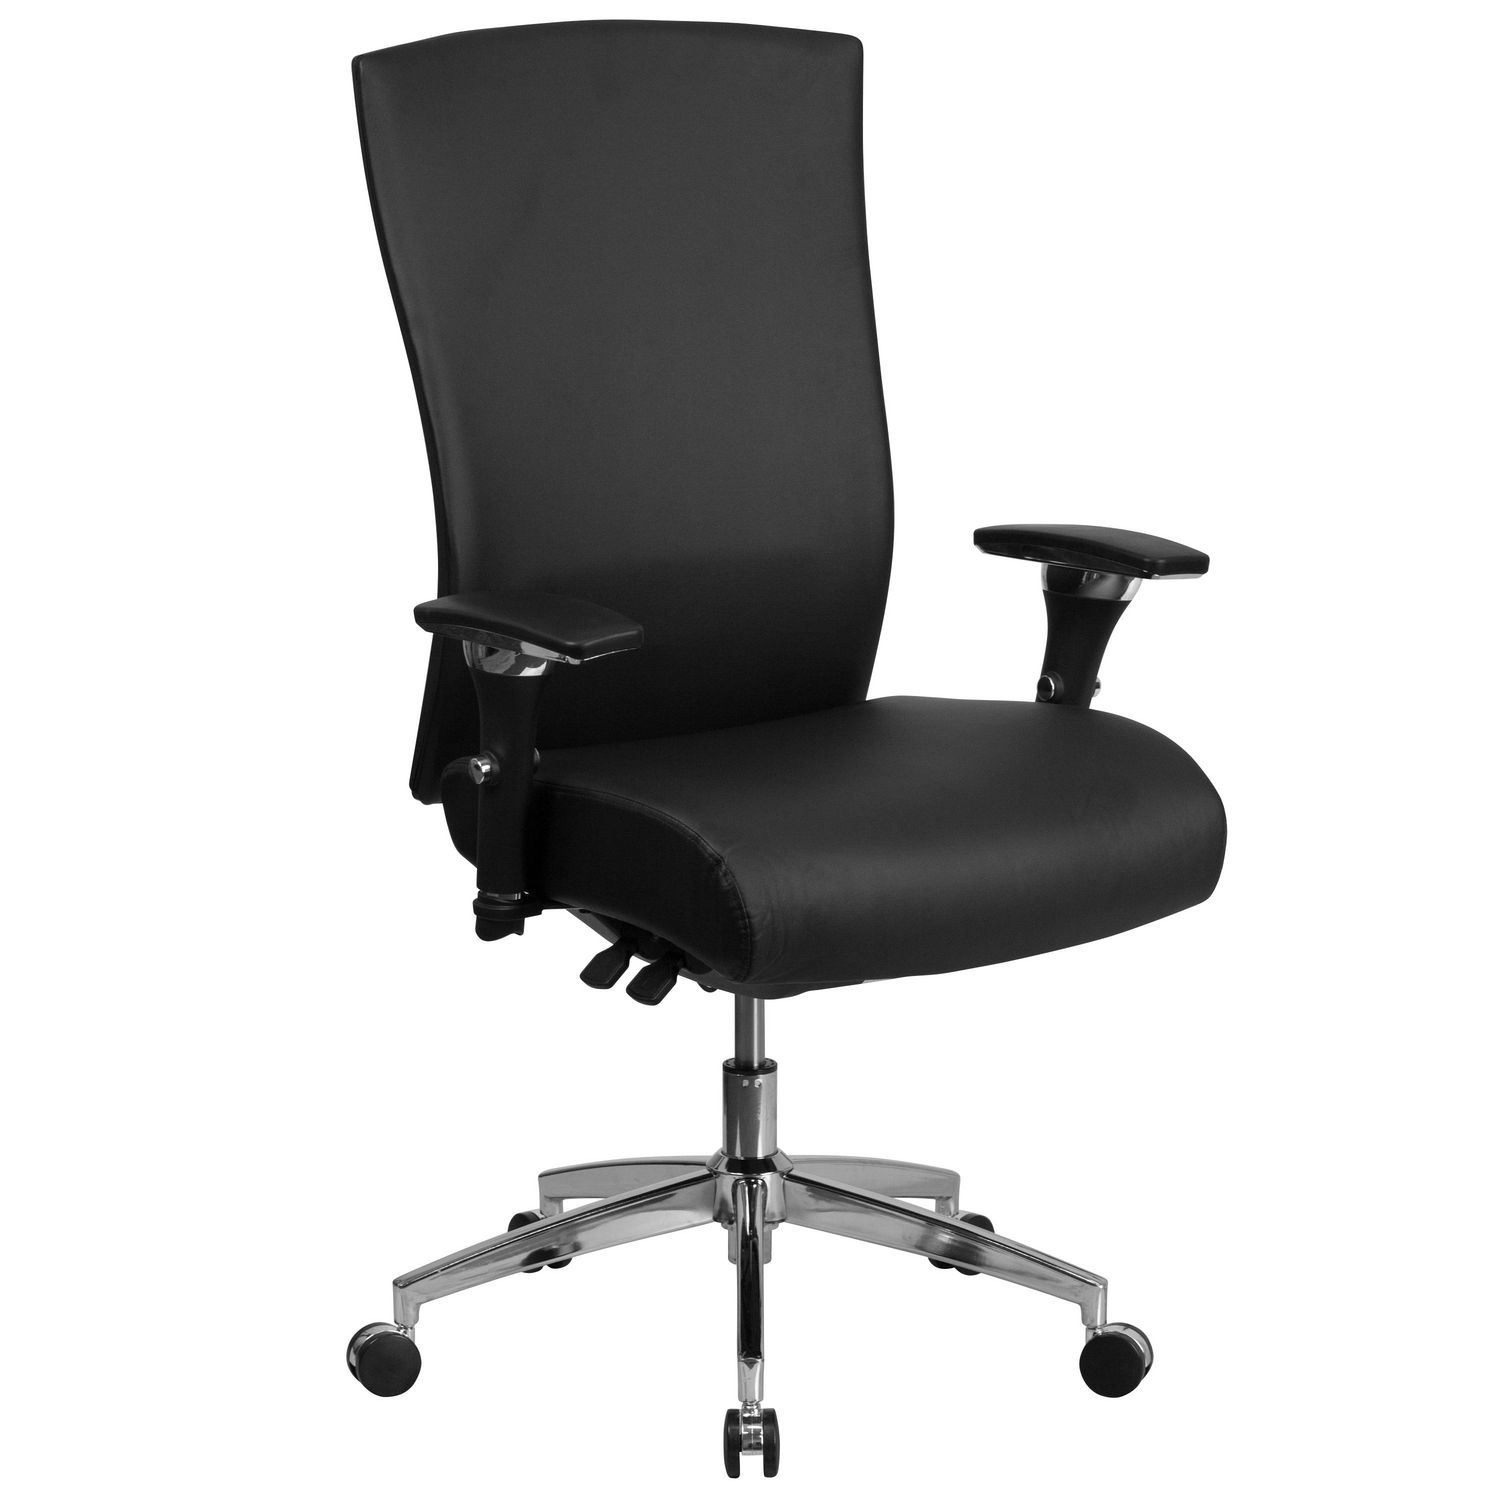 24 Hour Office Chairs Hercules Series 24 7 Intensive Use 300 Lb Rated Black Leather Multifunction Ergonomic Office Chair With Seat Slider